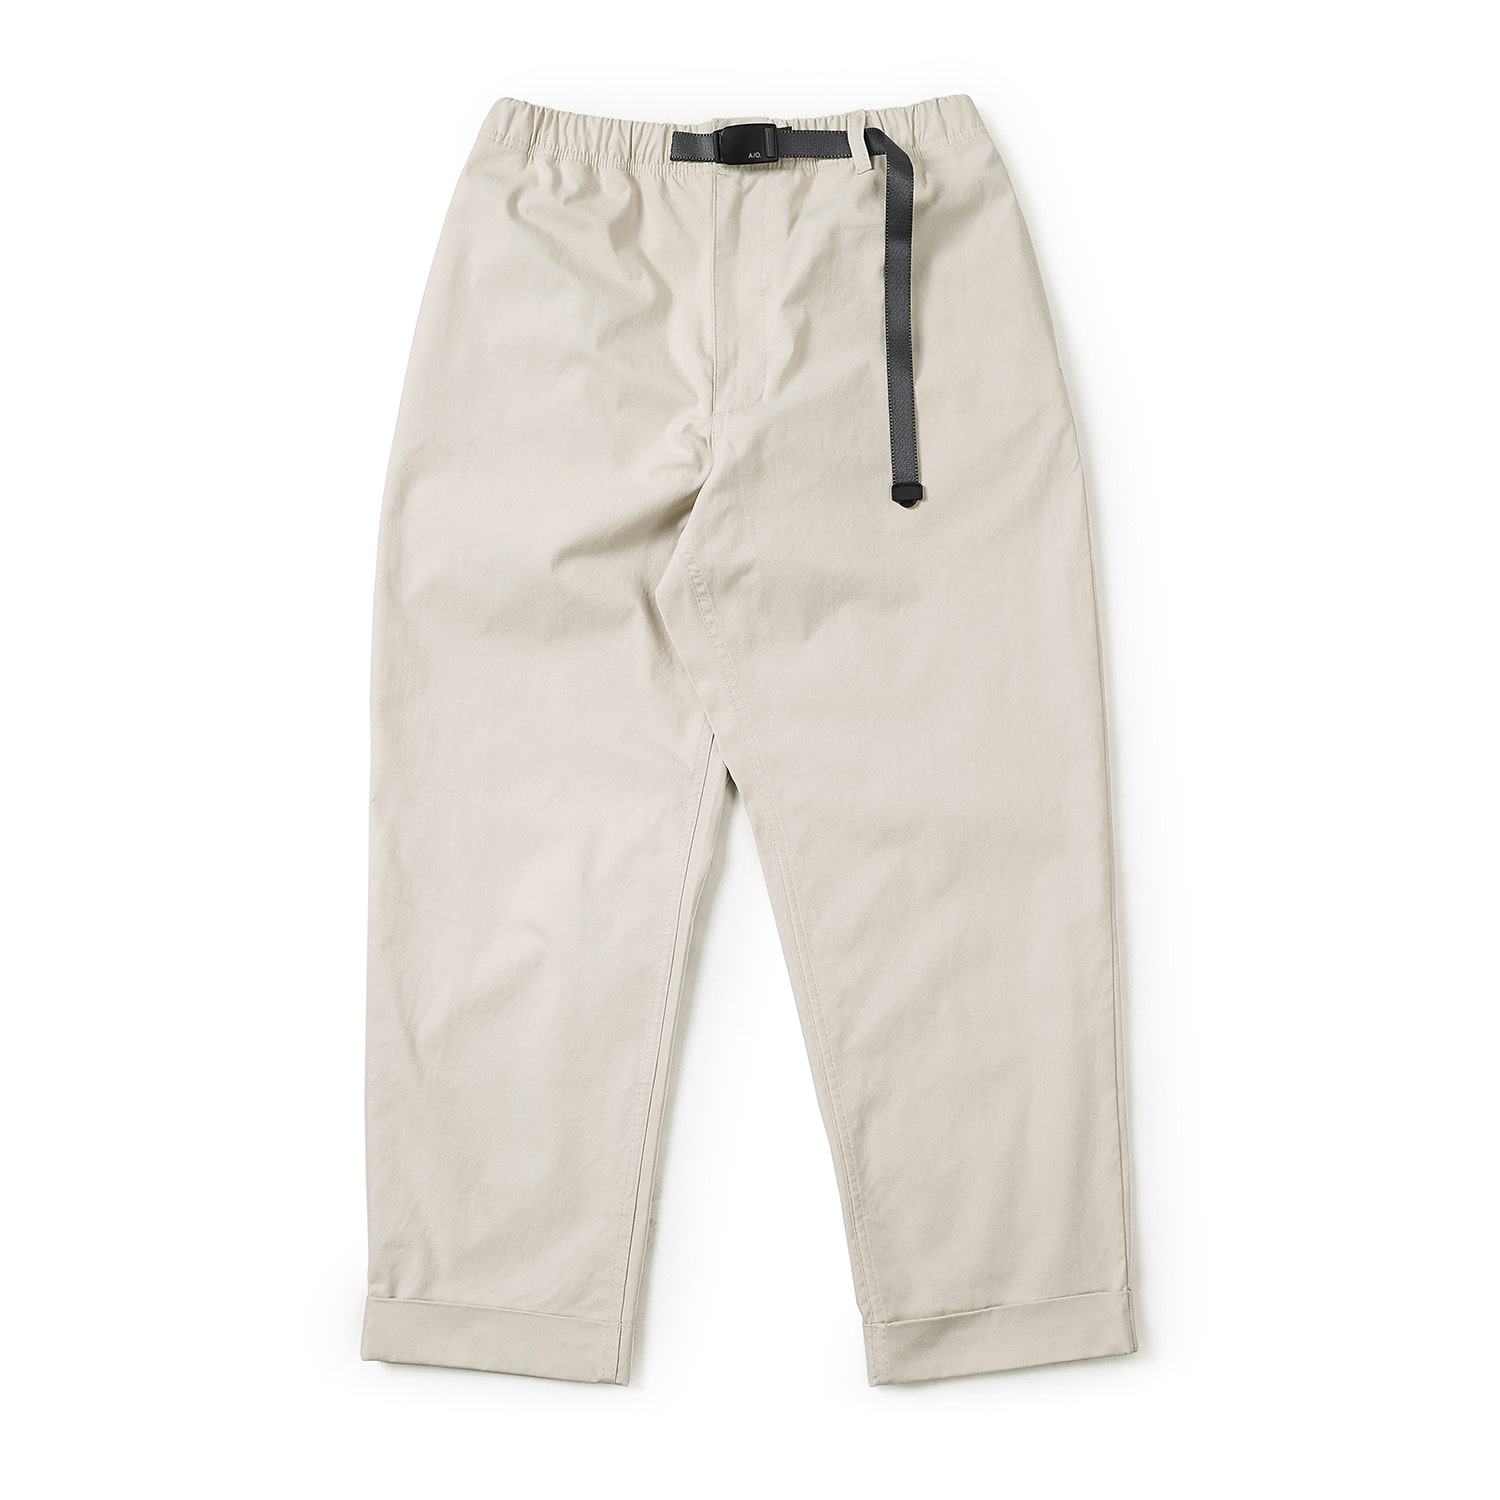 25% OFF_Stroller Dyed Pants (Ecru)